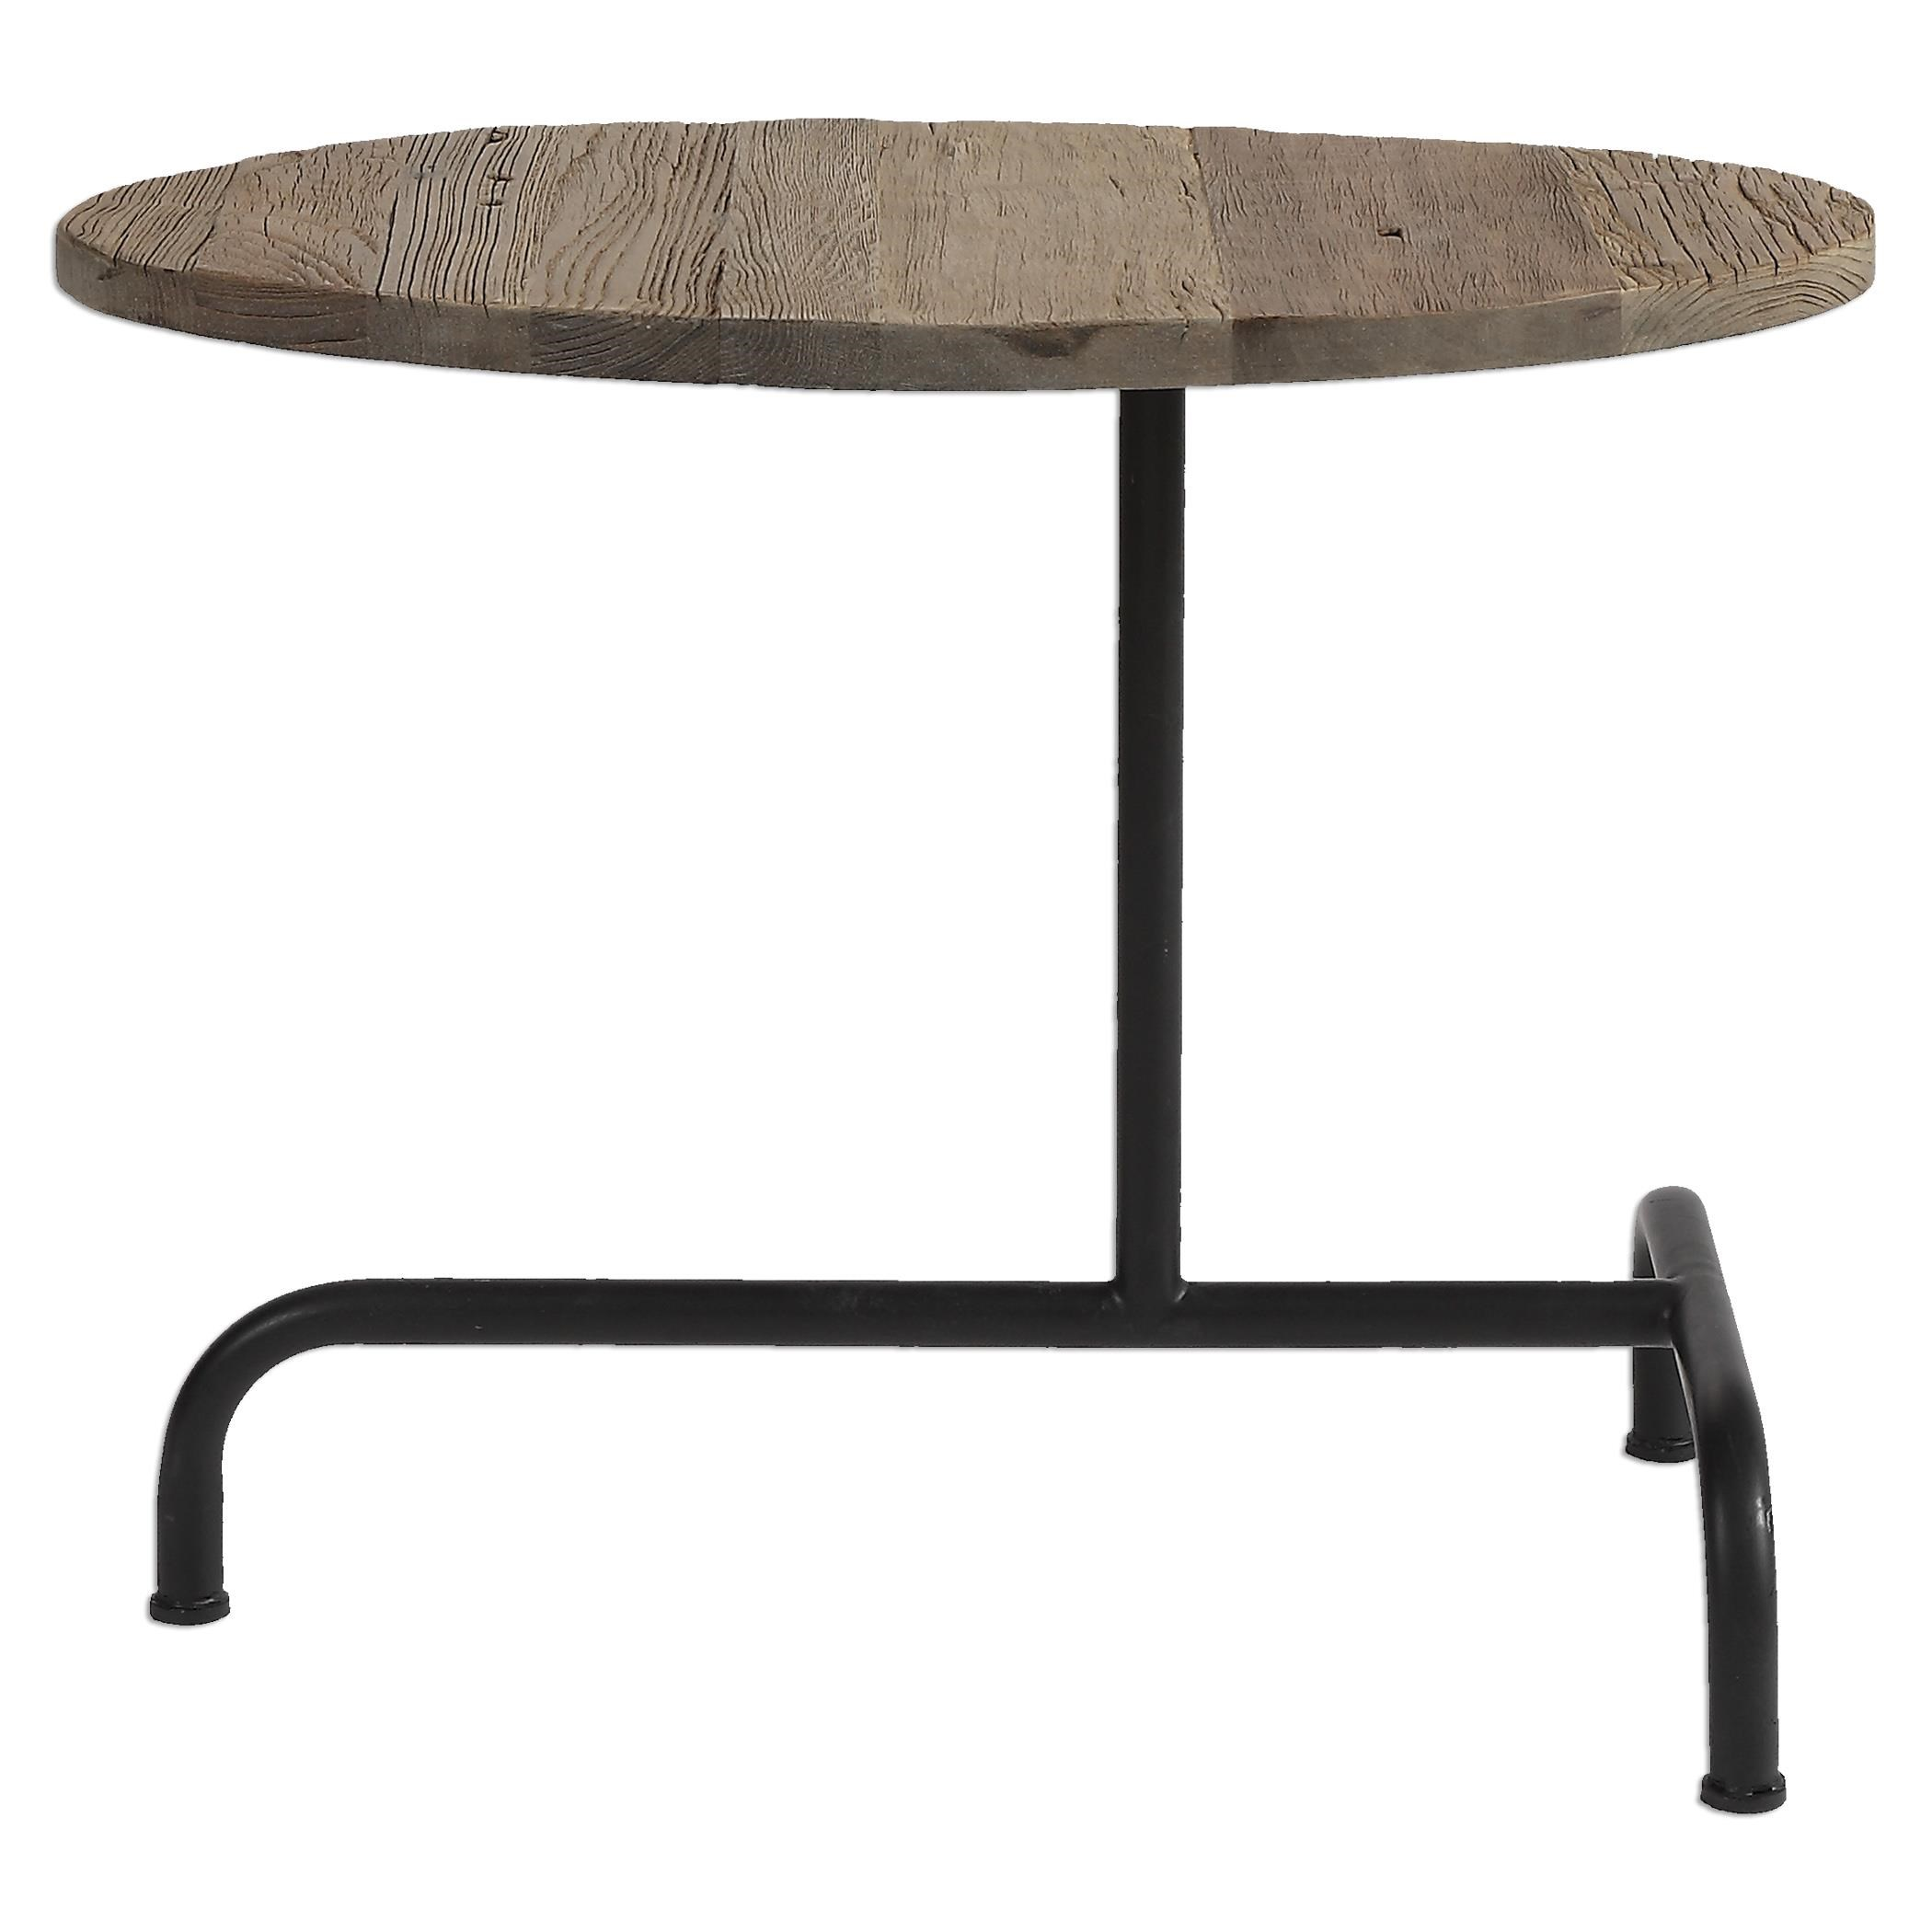 Medium image of uttermost accent furniture martez industrial accent table